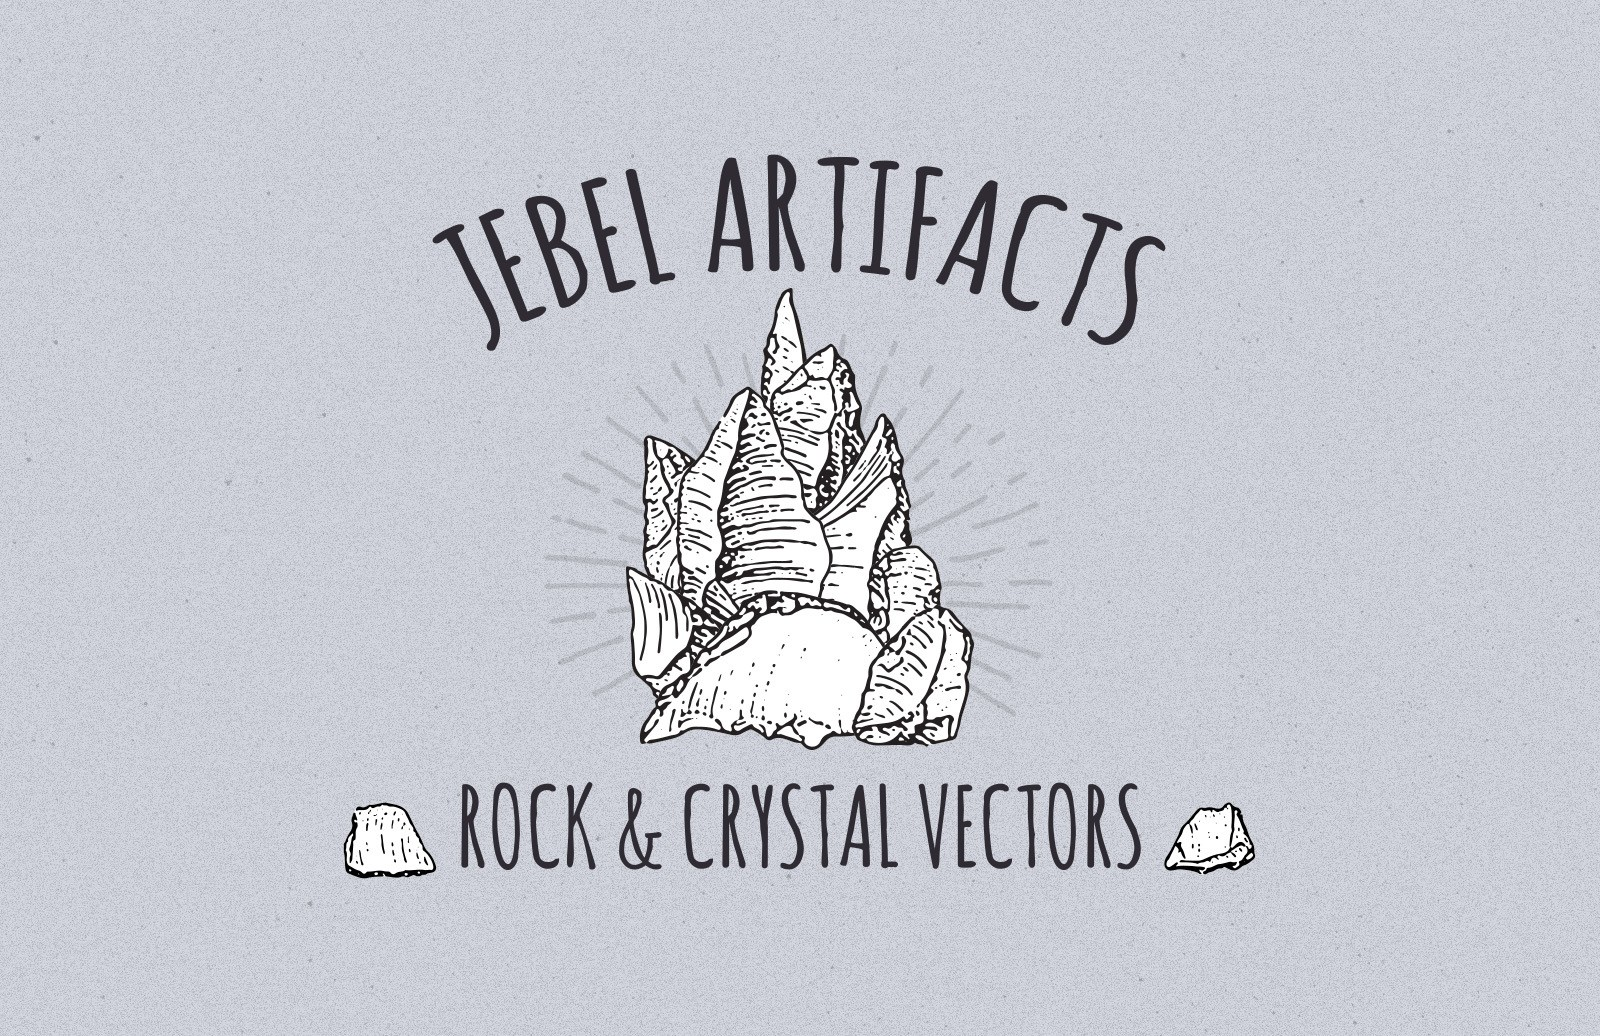 Jebel Artifacts: Rock & Crystal Vectors